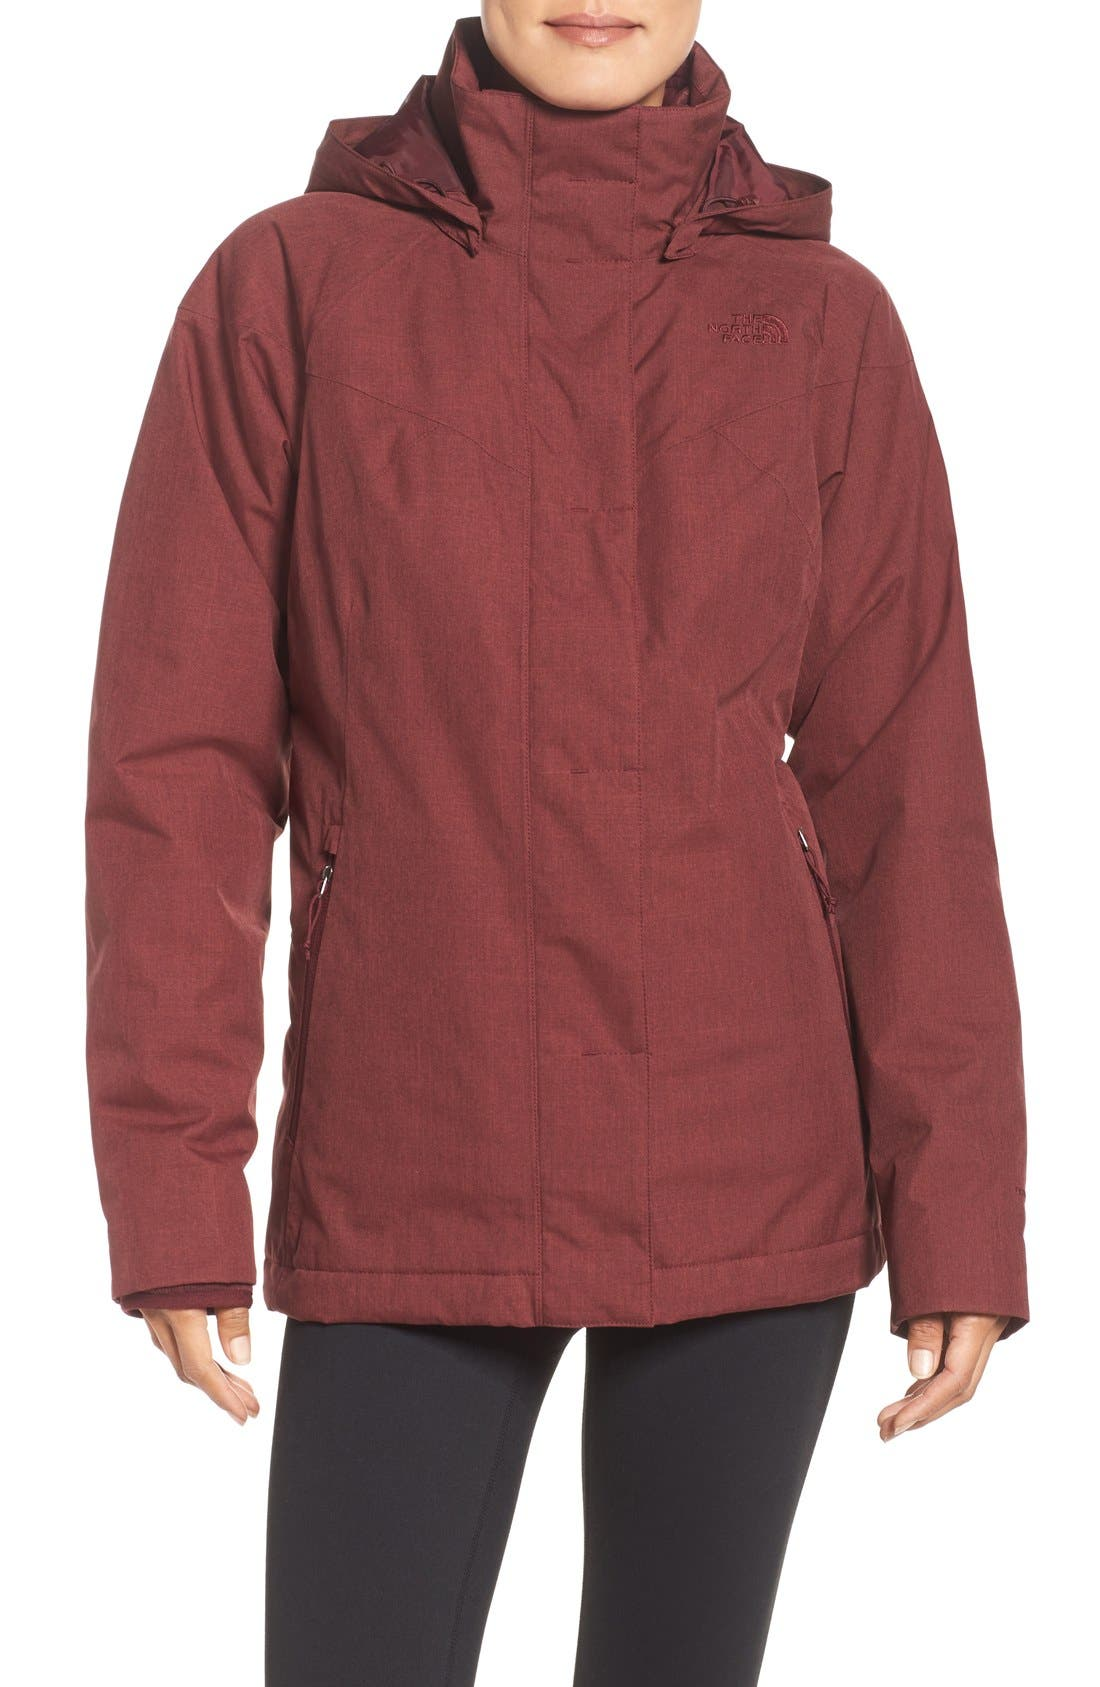 Main Image - The North Face 'Kalispell' TriClimate® 3-in-1 Jacket